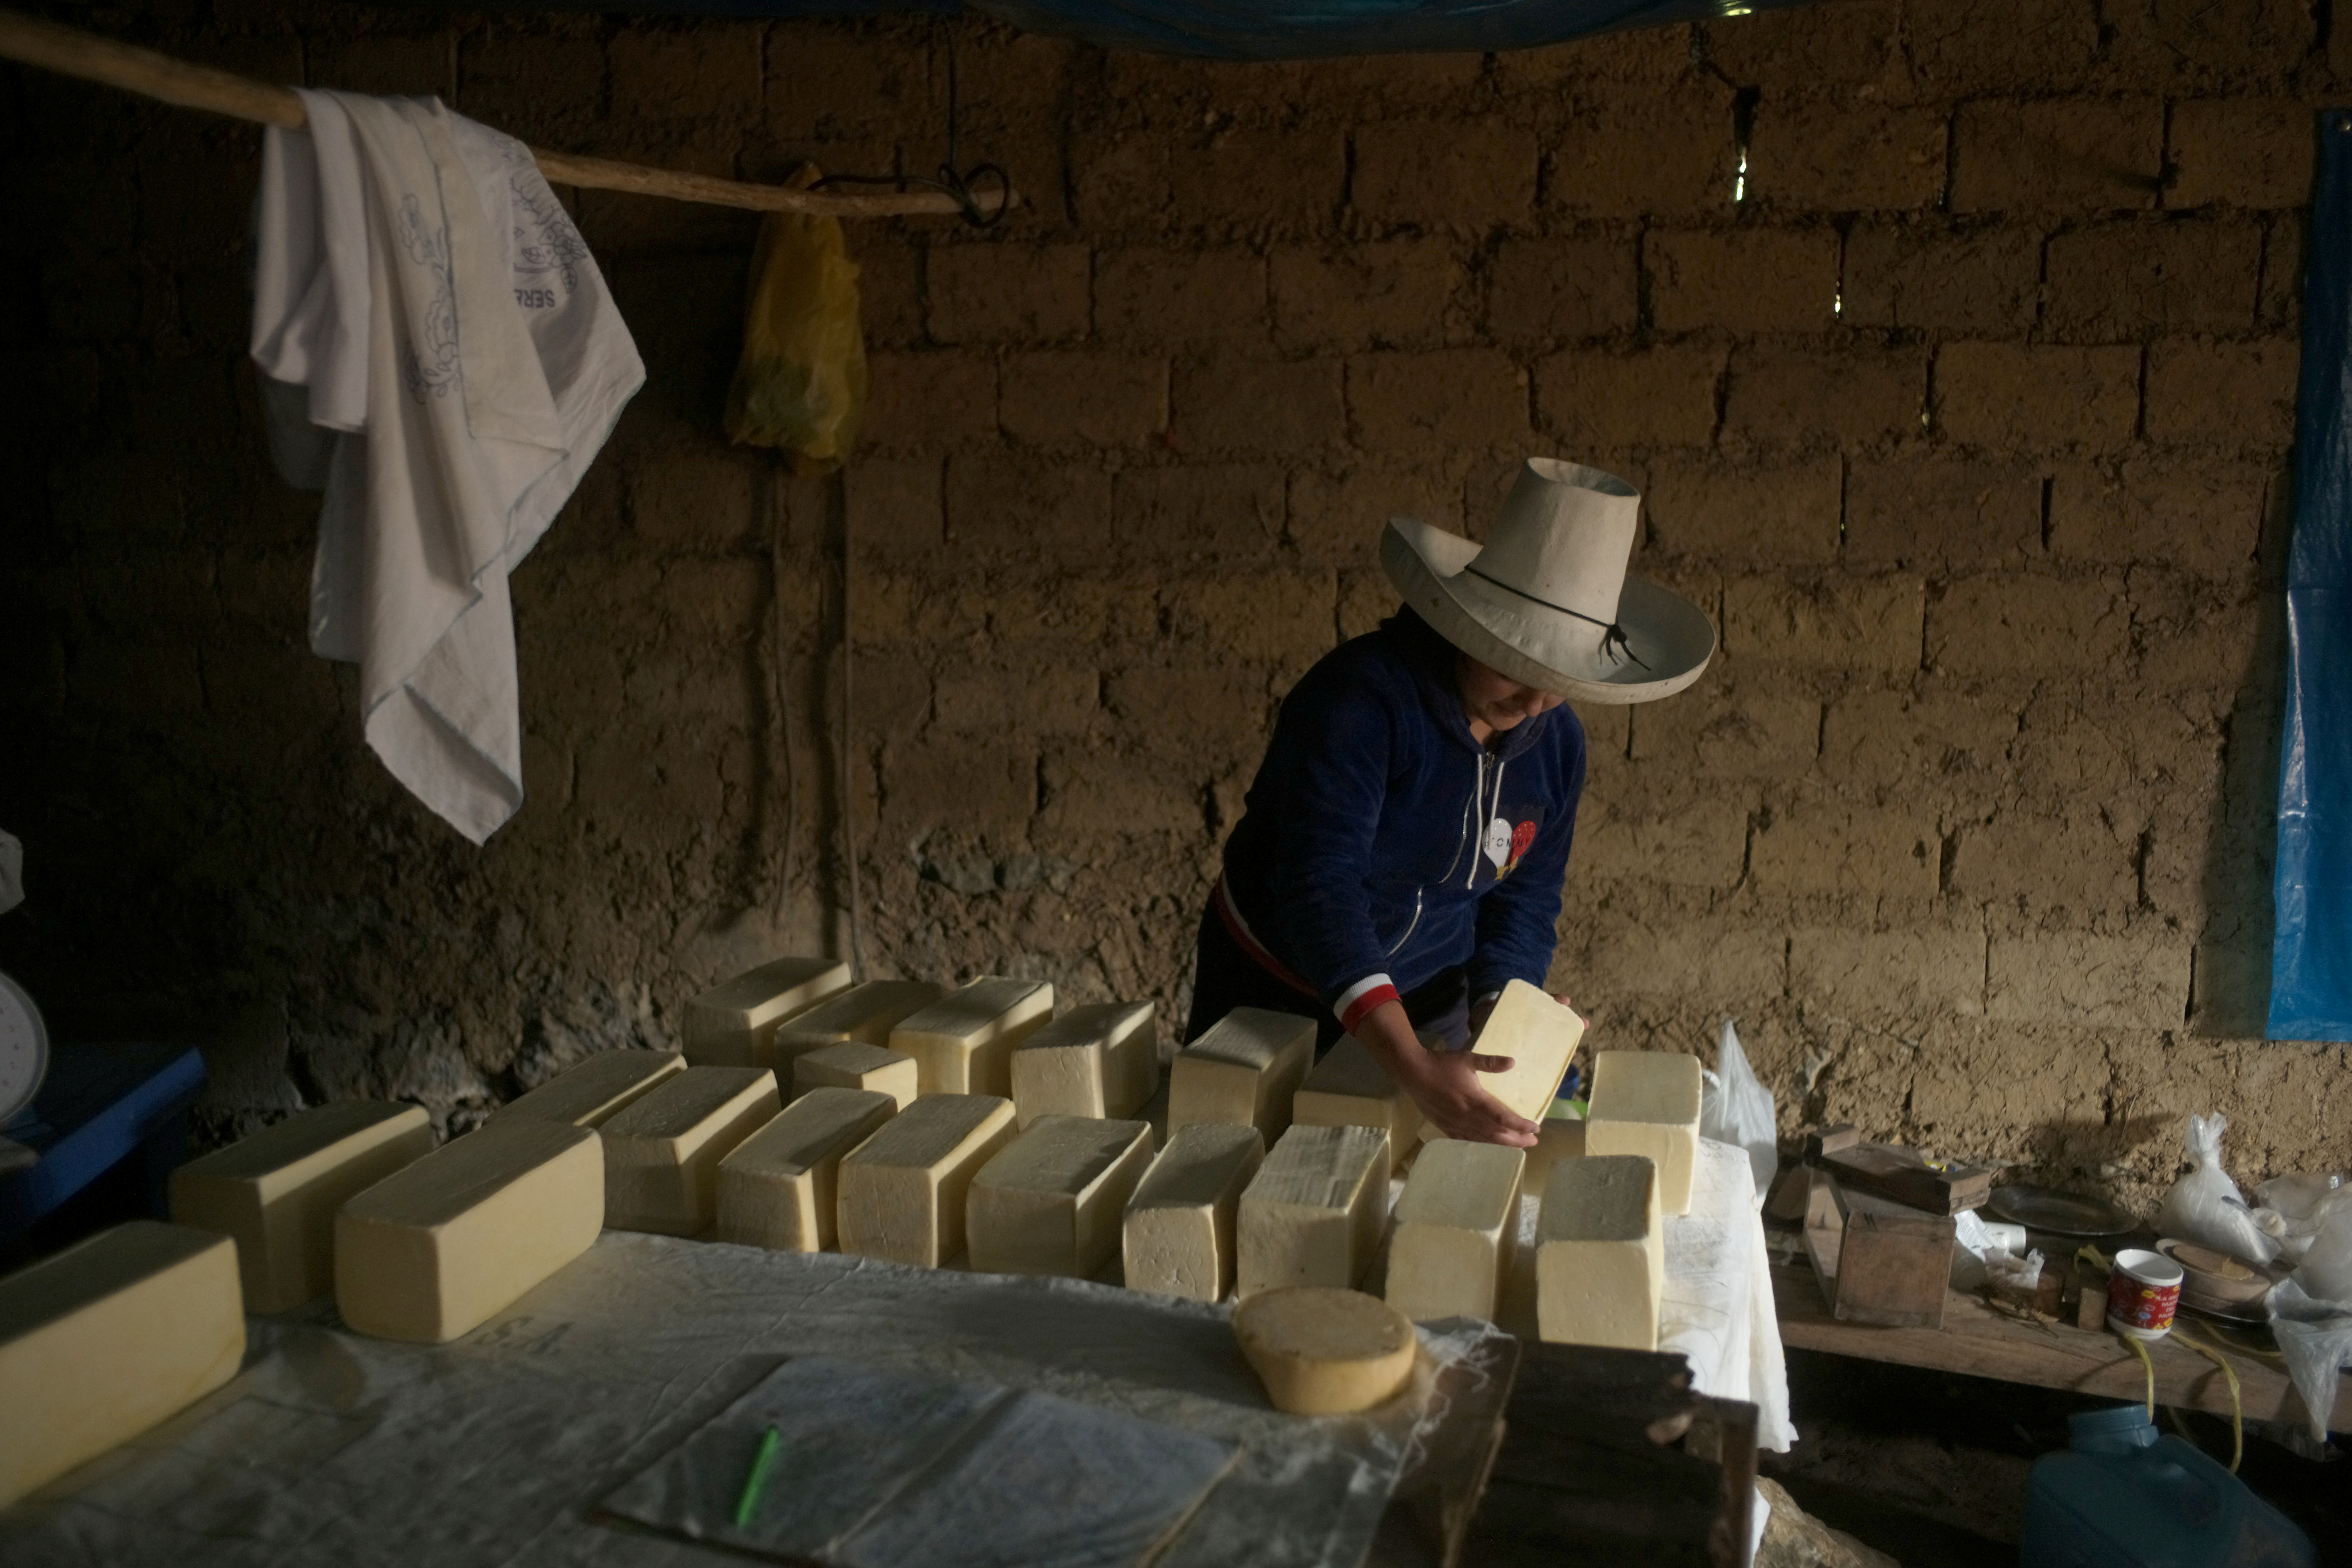 Luceli Banda Medina, a former student of Peru's presidential candidate Pedro Castillo, arranges blocks of cheese that she and her family made at home, in Puna, Peru June 3, 2021. Picture taken June 3, 2021. REUTERS/Alessandro Cinque